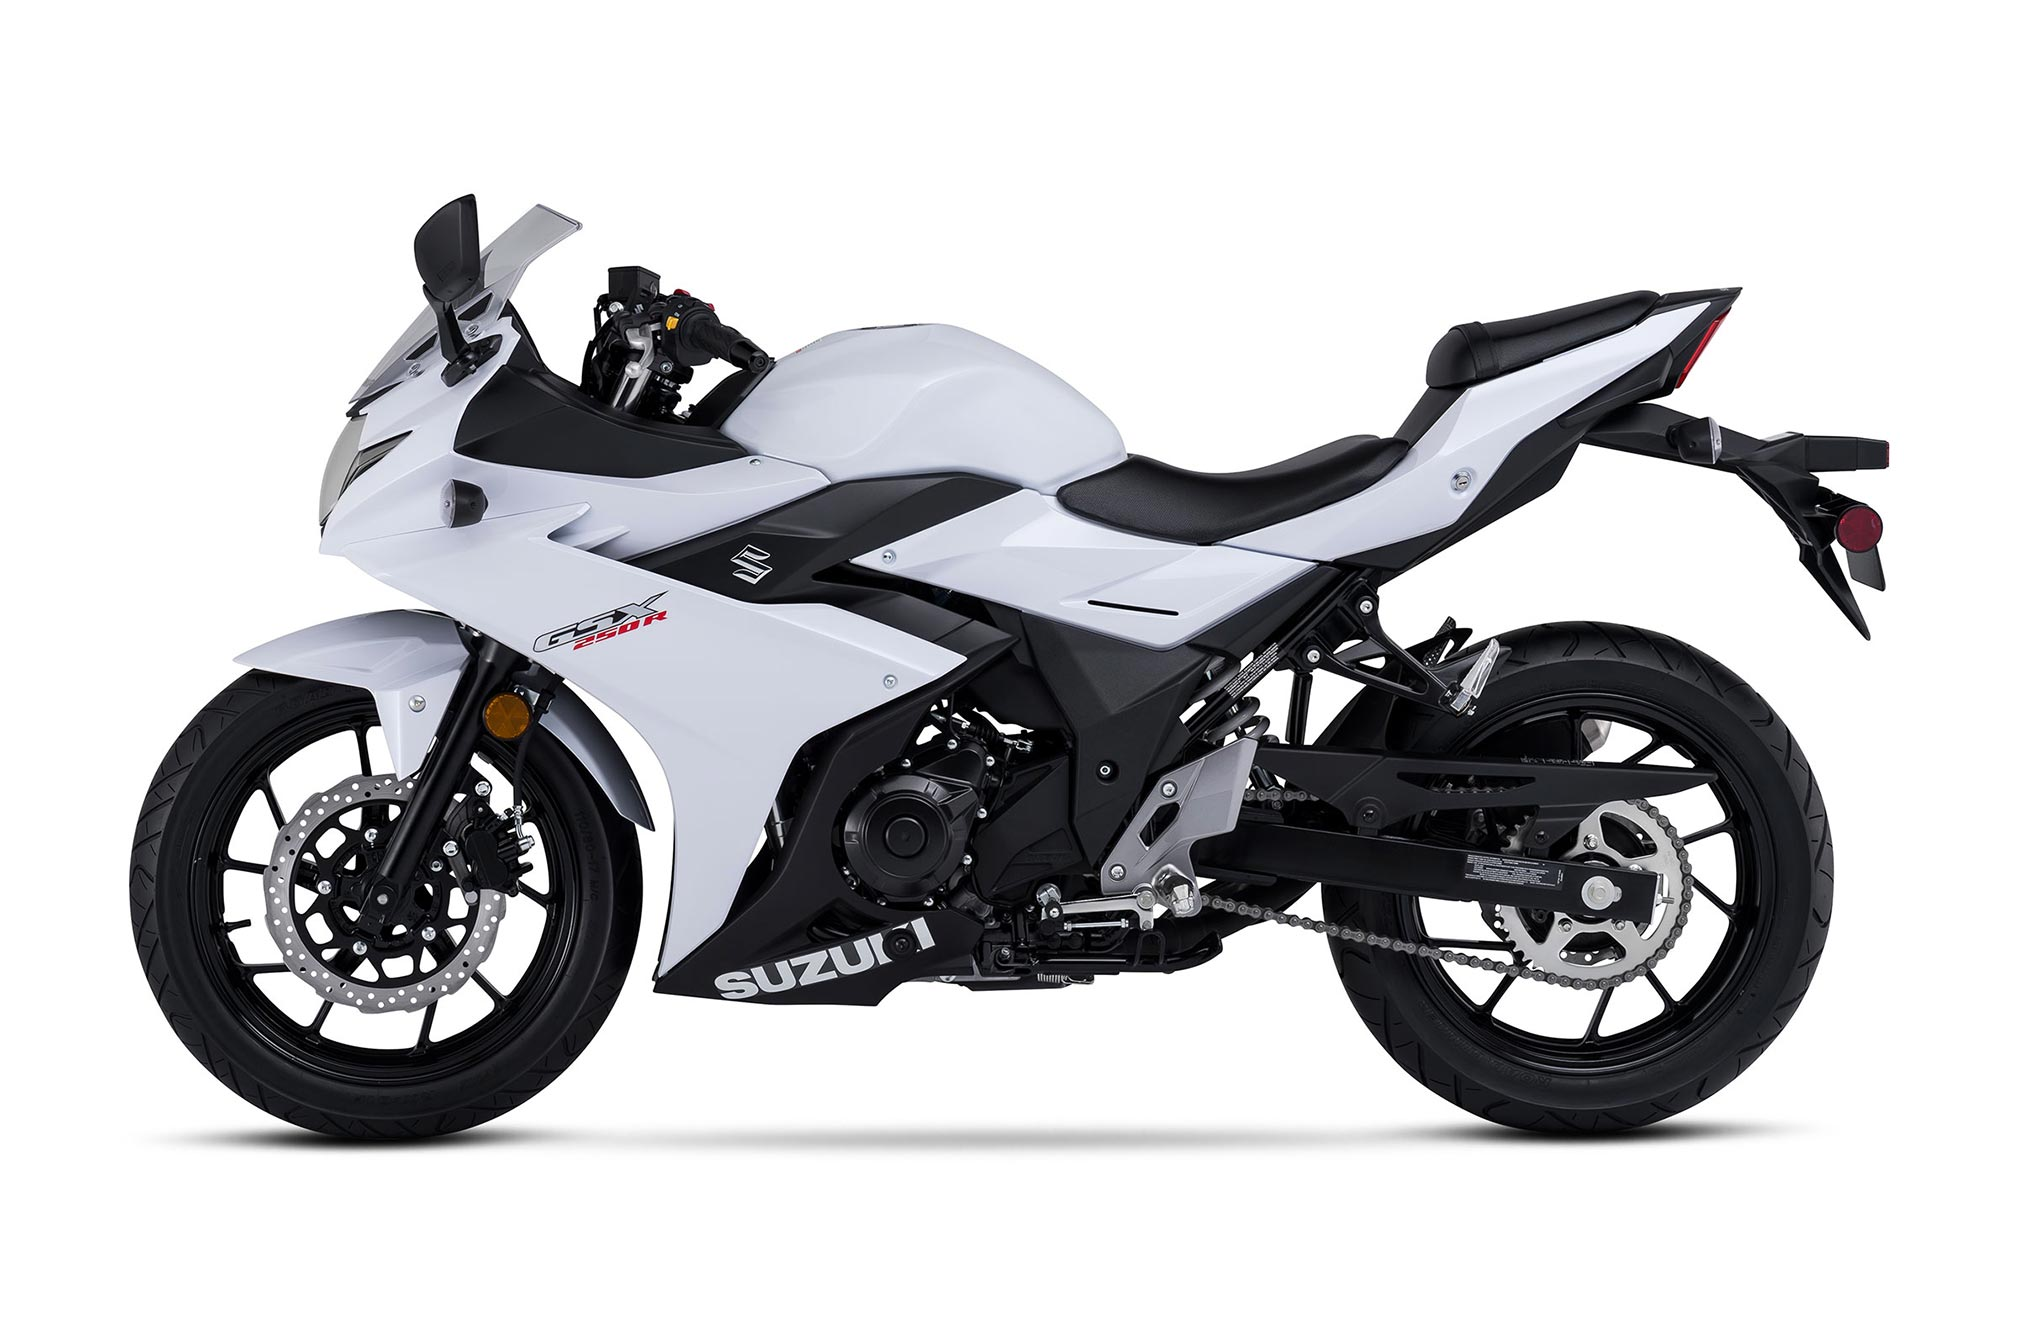 Land Speed Record >> 2018 Suzuki GSX250R Review - TotalMotorcycle